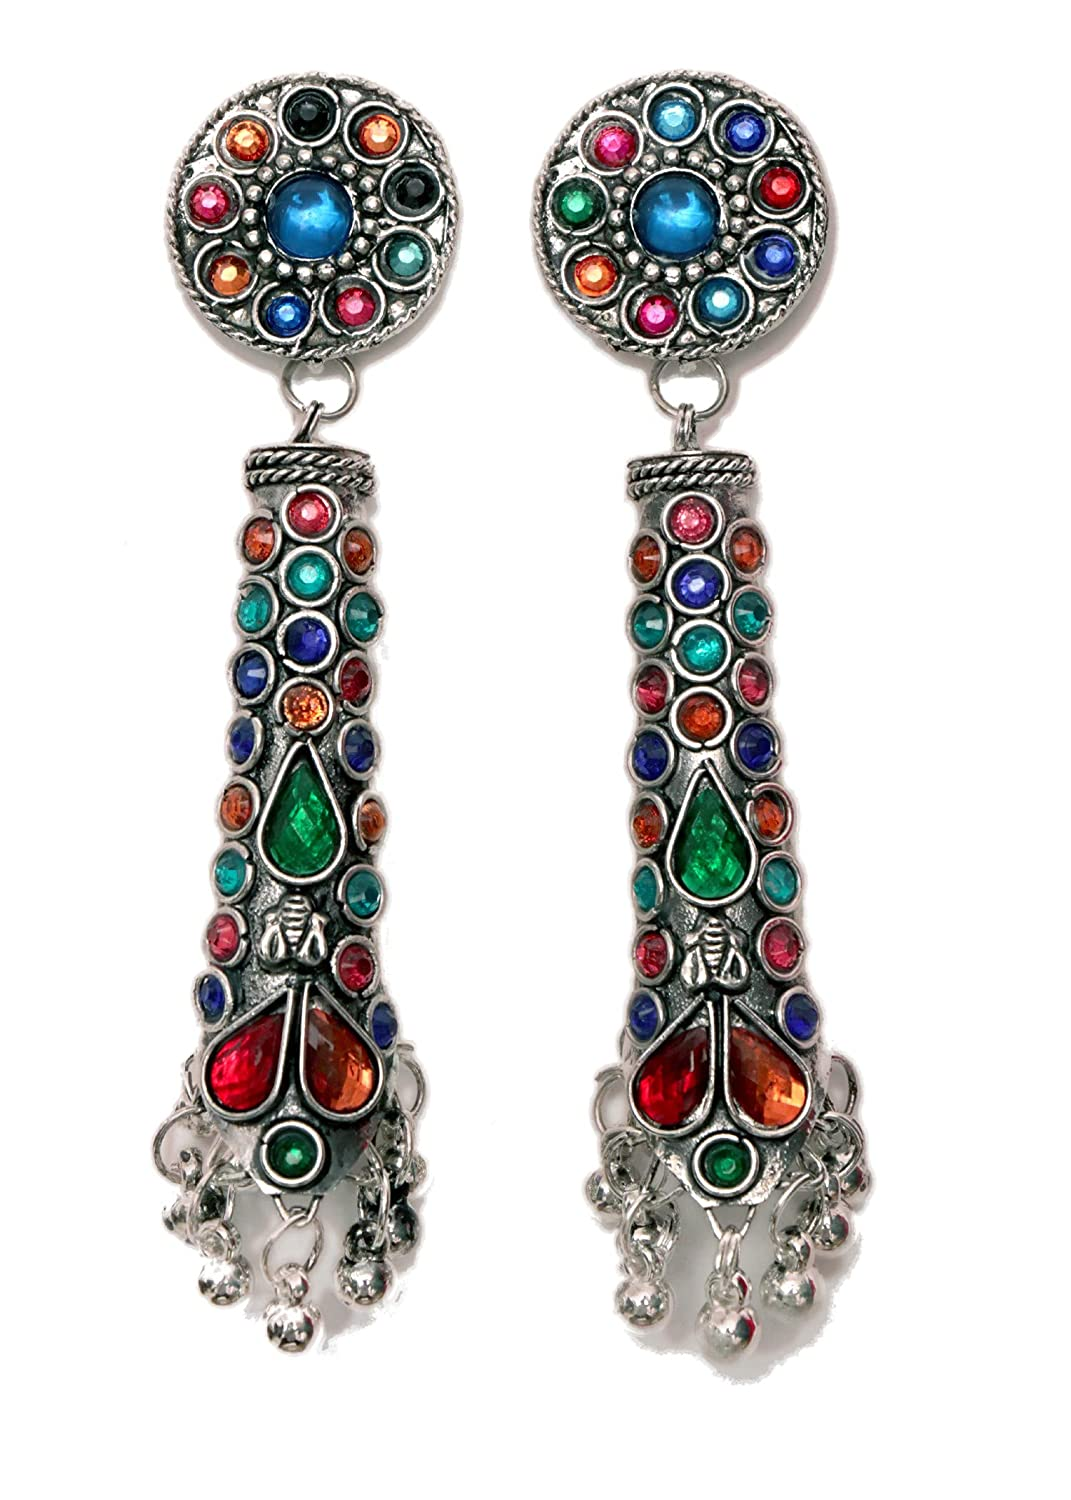 embedded stones Indian Traditional Jewellery for Stylish Women and Girls by SP Jewels Tribal Dangling Jhumki